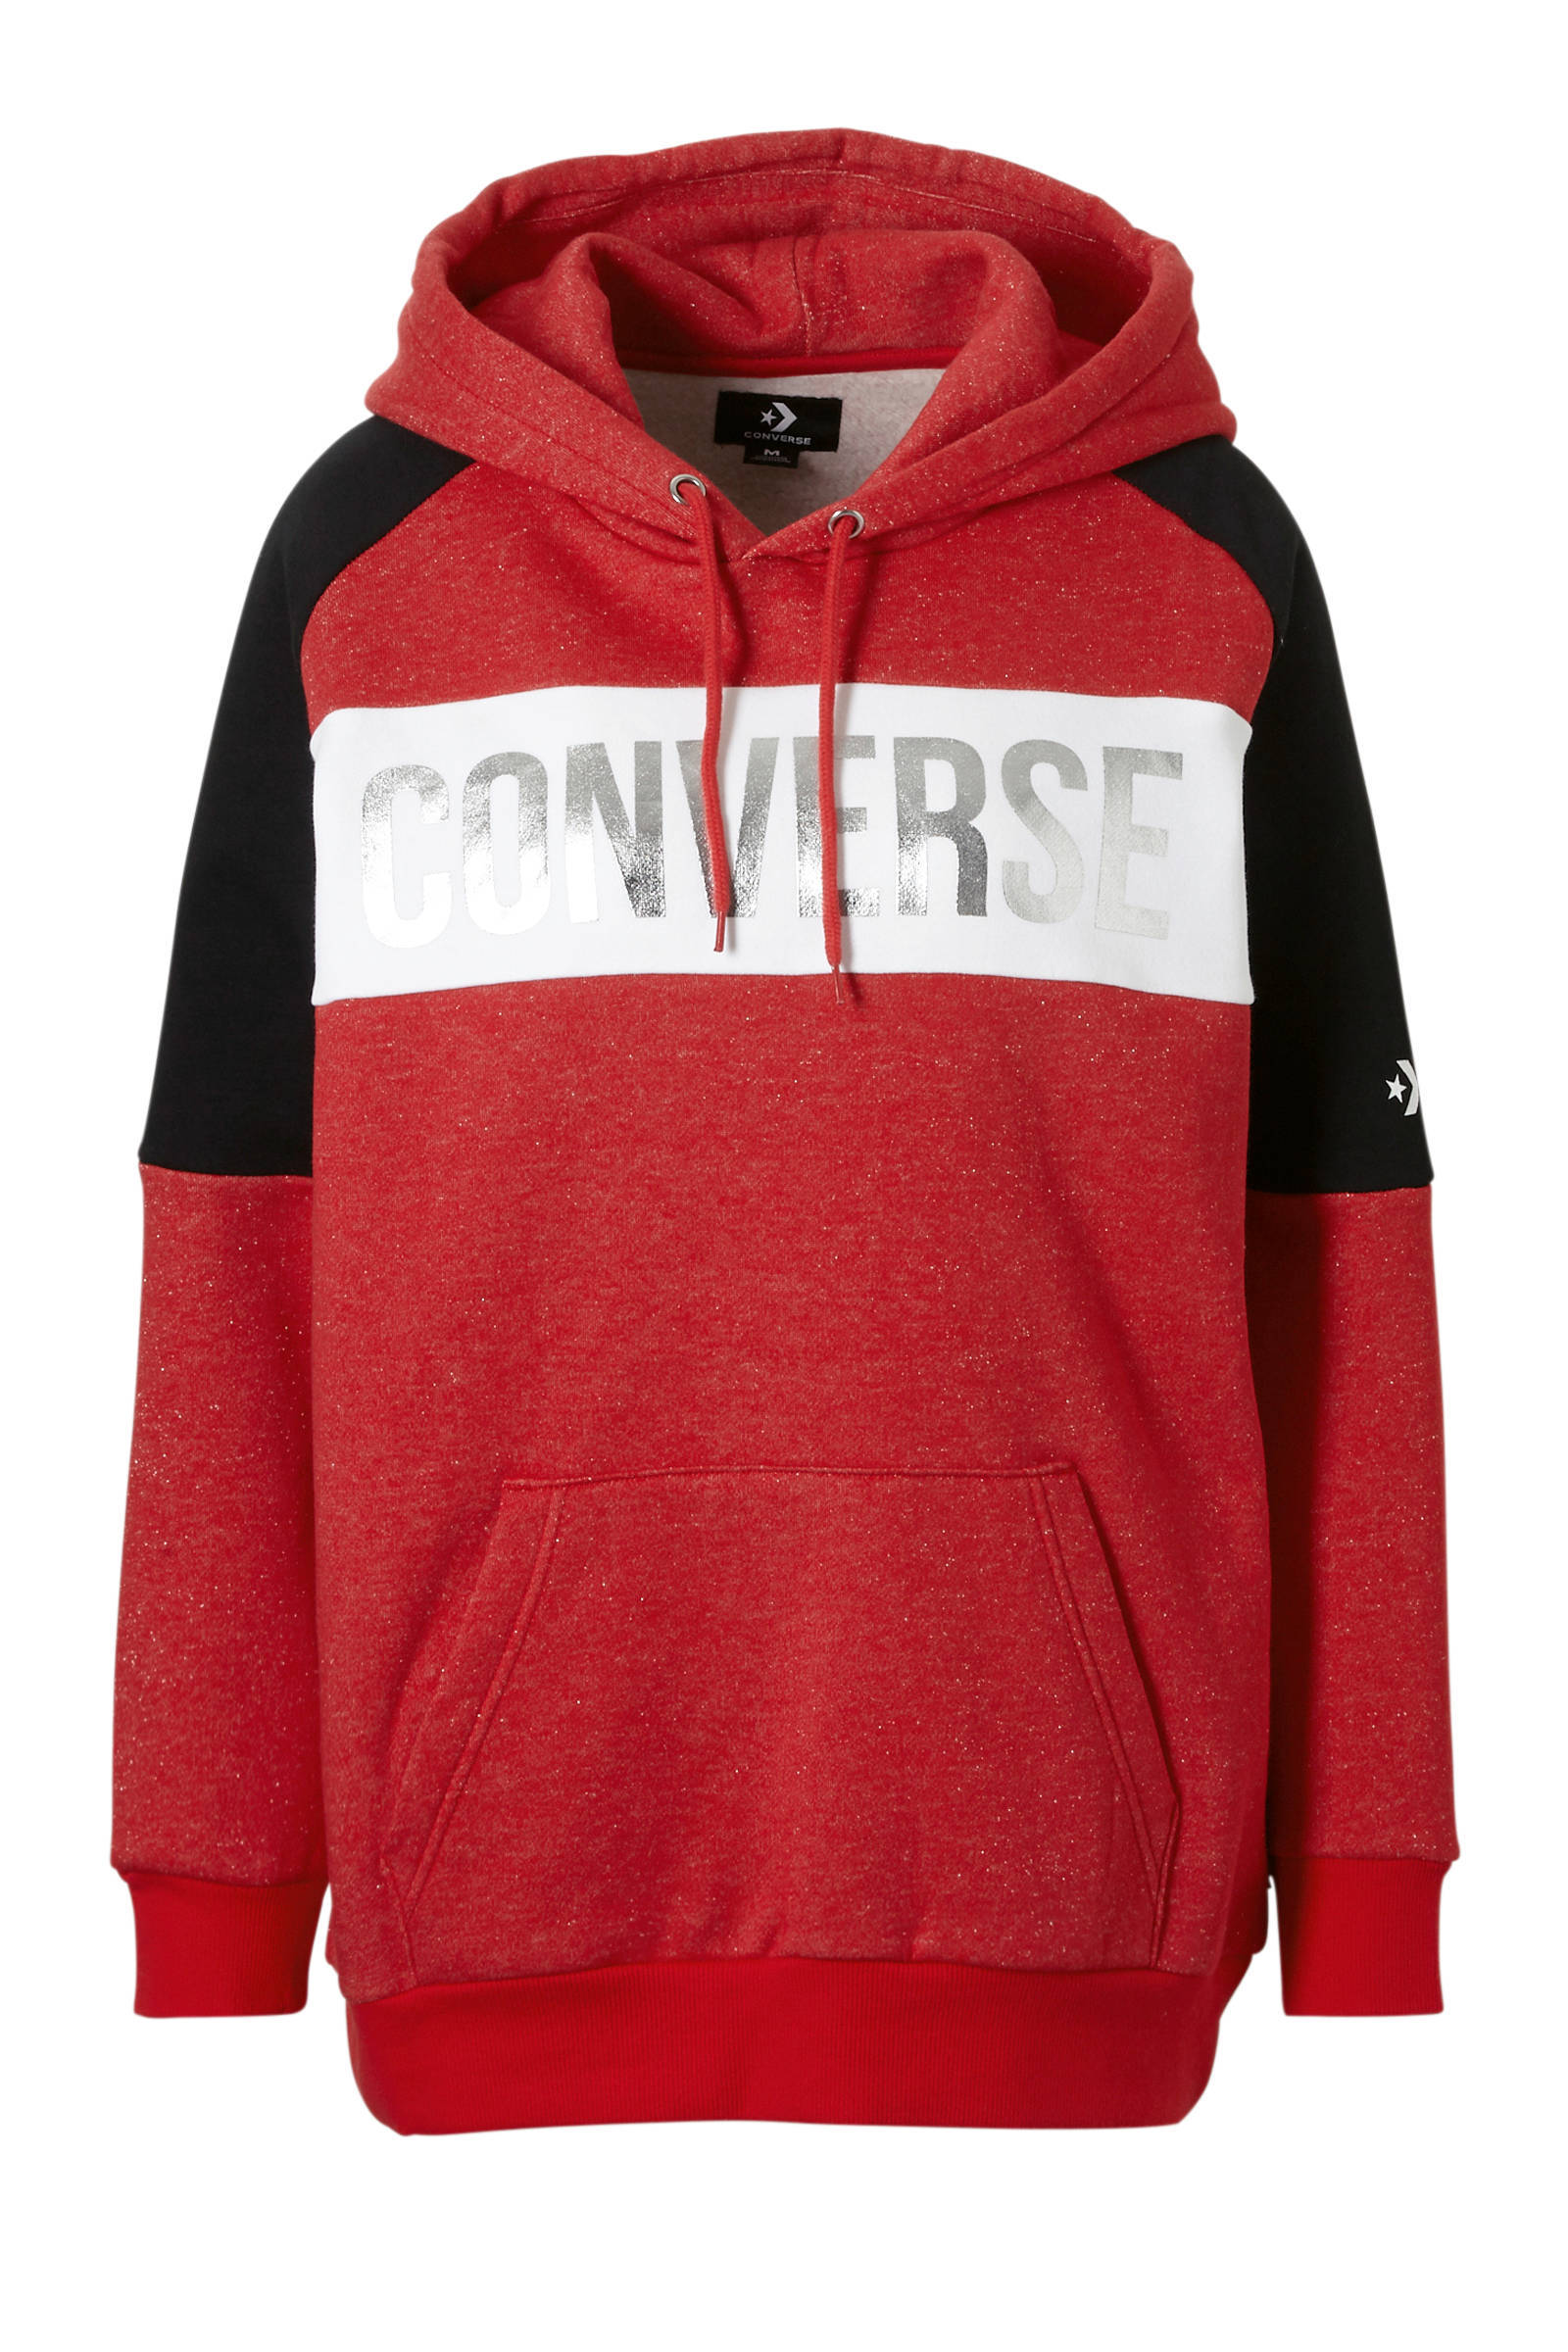 converse sweater dames